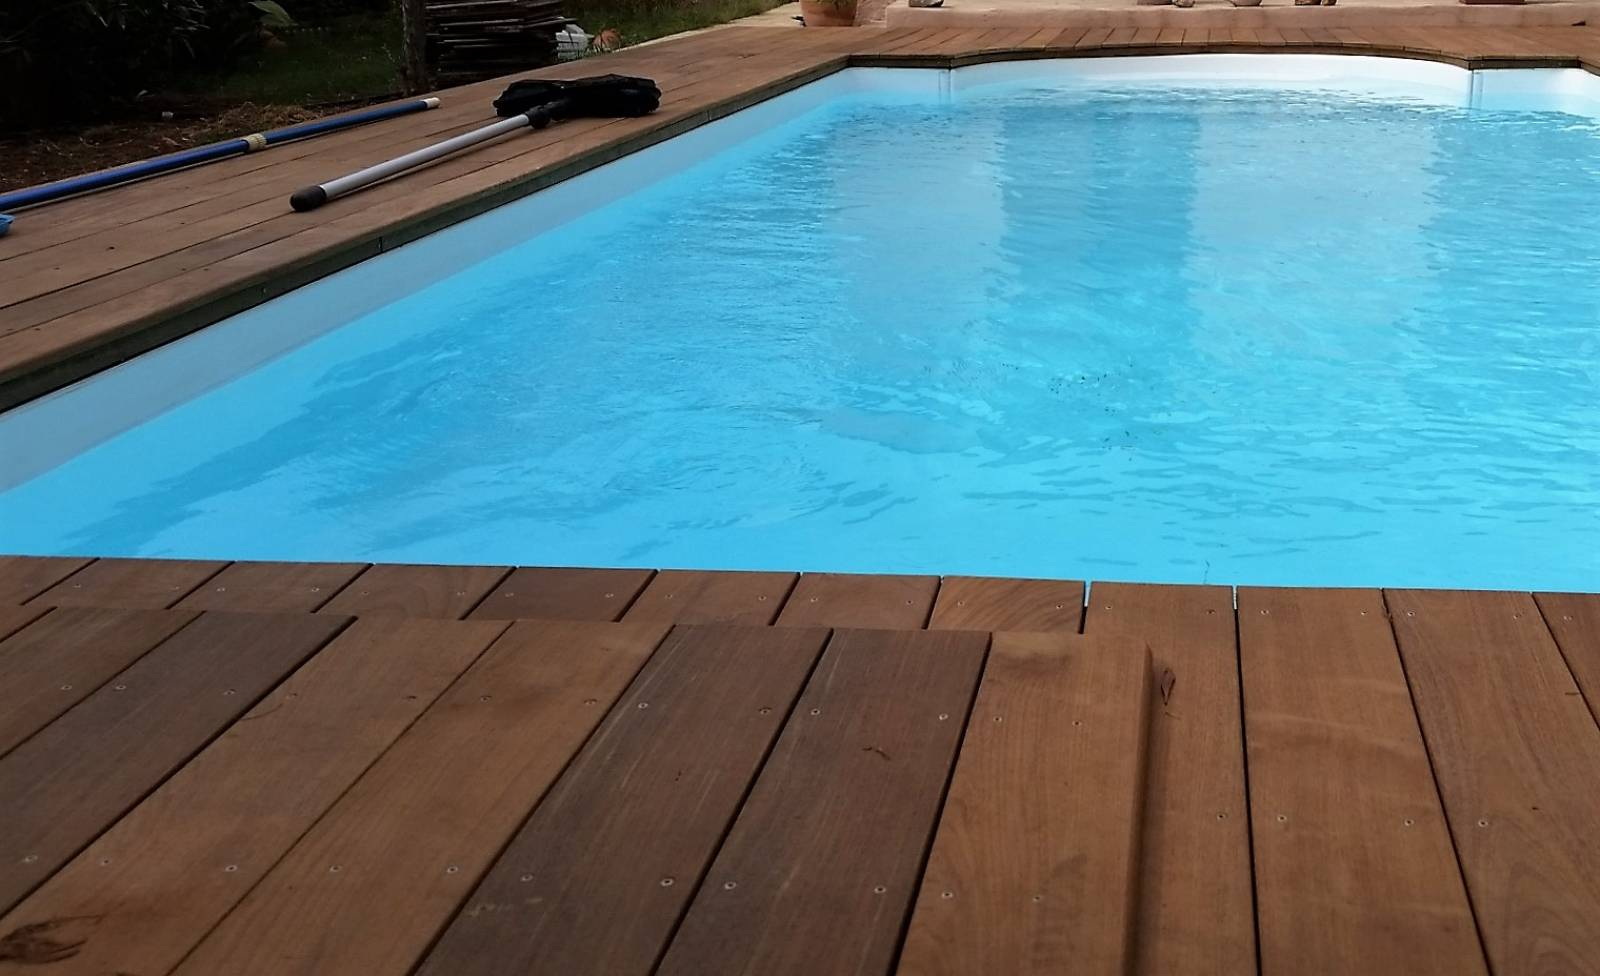 Prix piscine beton 8x4 prix coque piscine 8x4 photos que for Piscine desjoyaux